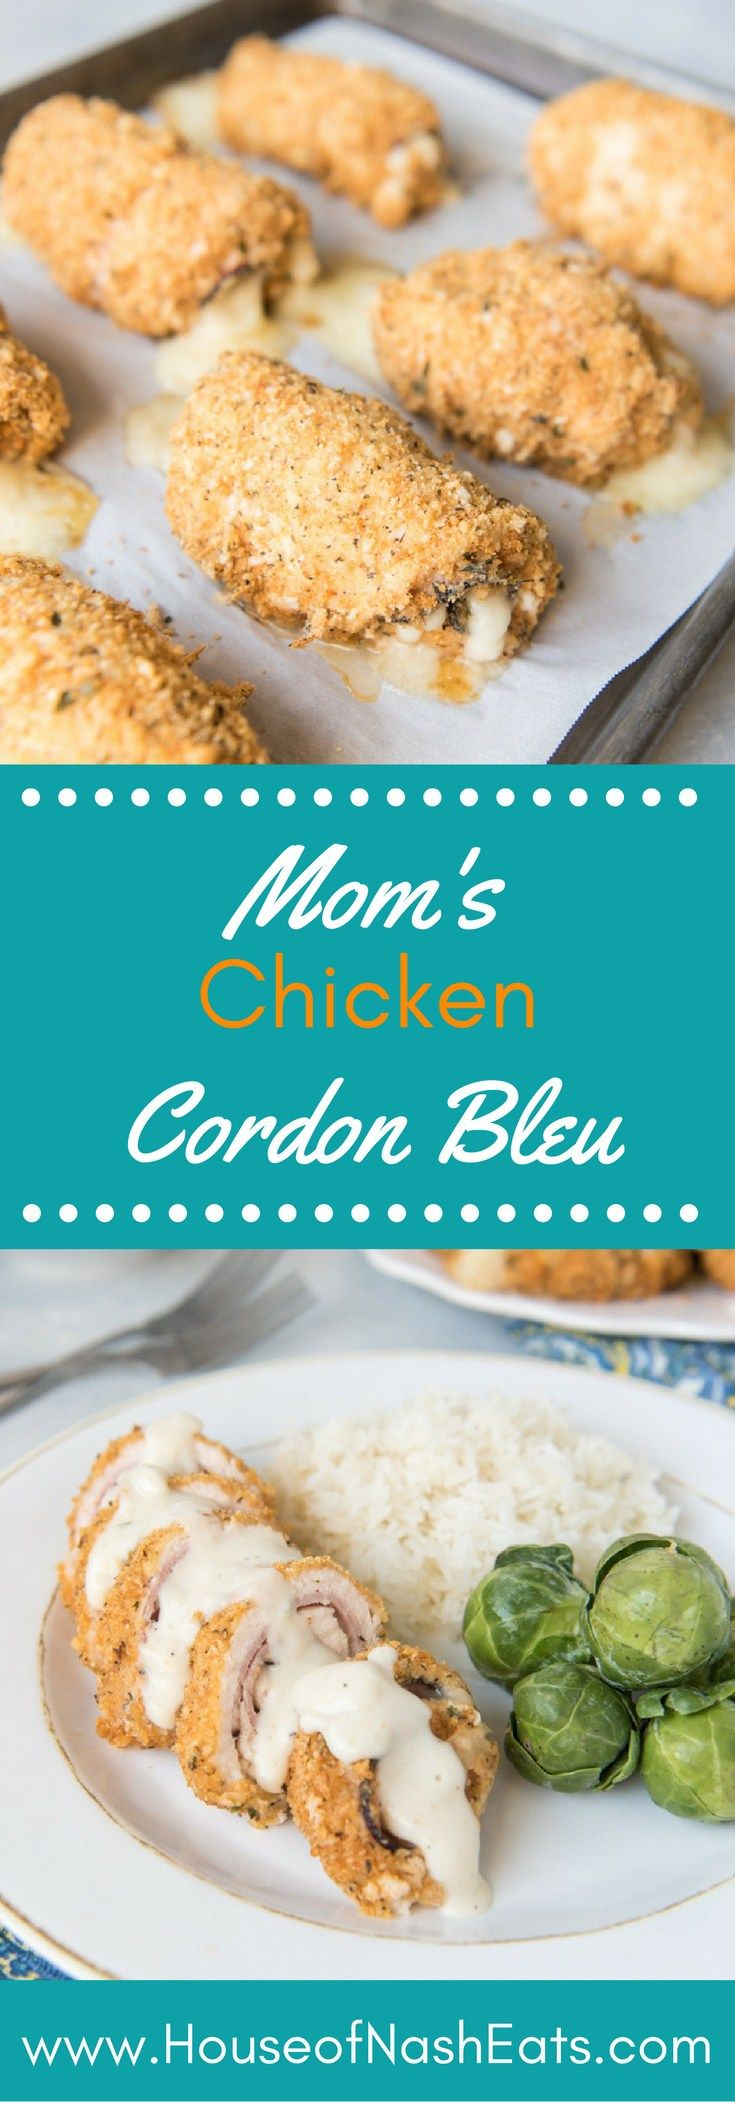 This easy Chicken Cordon Bleu has moist chicken, rich ham, and Swiss cheese that gets breaded with a garlic, herb and cheese breading and served with an easy savory sauce, just like my mom makes it. You're going to love it!